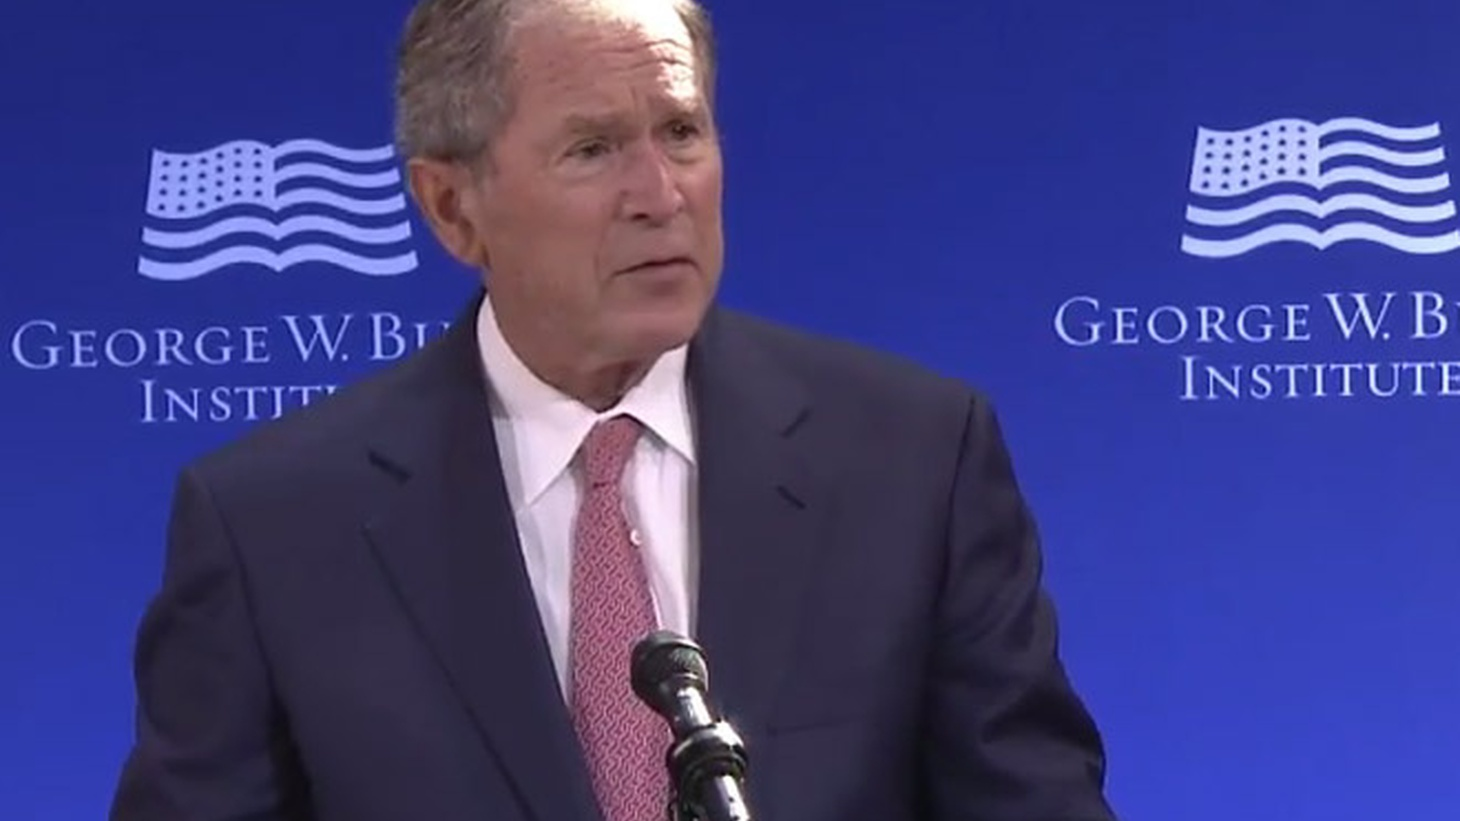 "Former President George W. Bush has hardly been heard from for 10 years. But today in New York, he delivered a  scathing speech  about the current state of American politics. ""Bigotry seems emboldened."